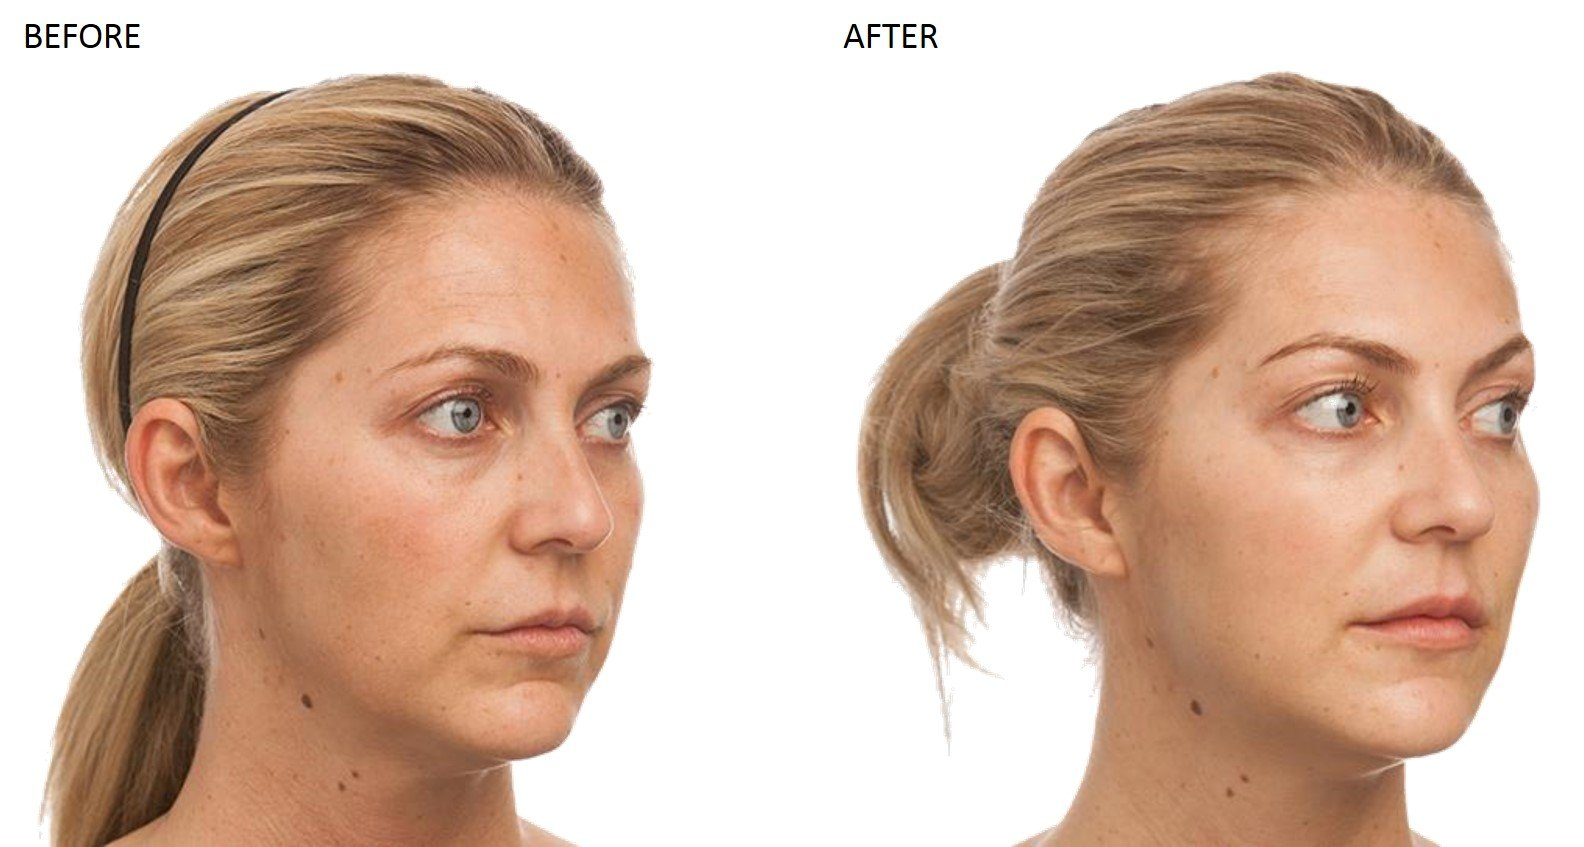 Dermal Fillers at Total Body Care